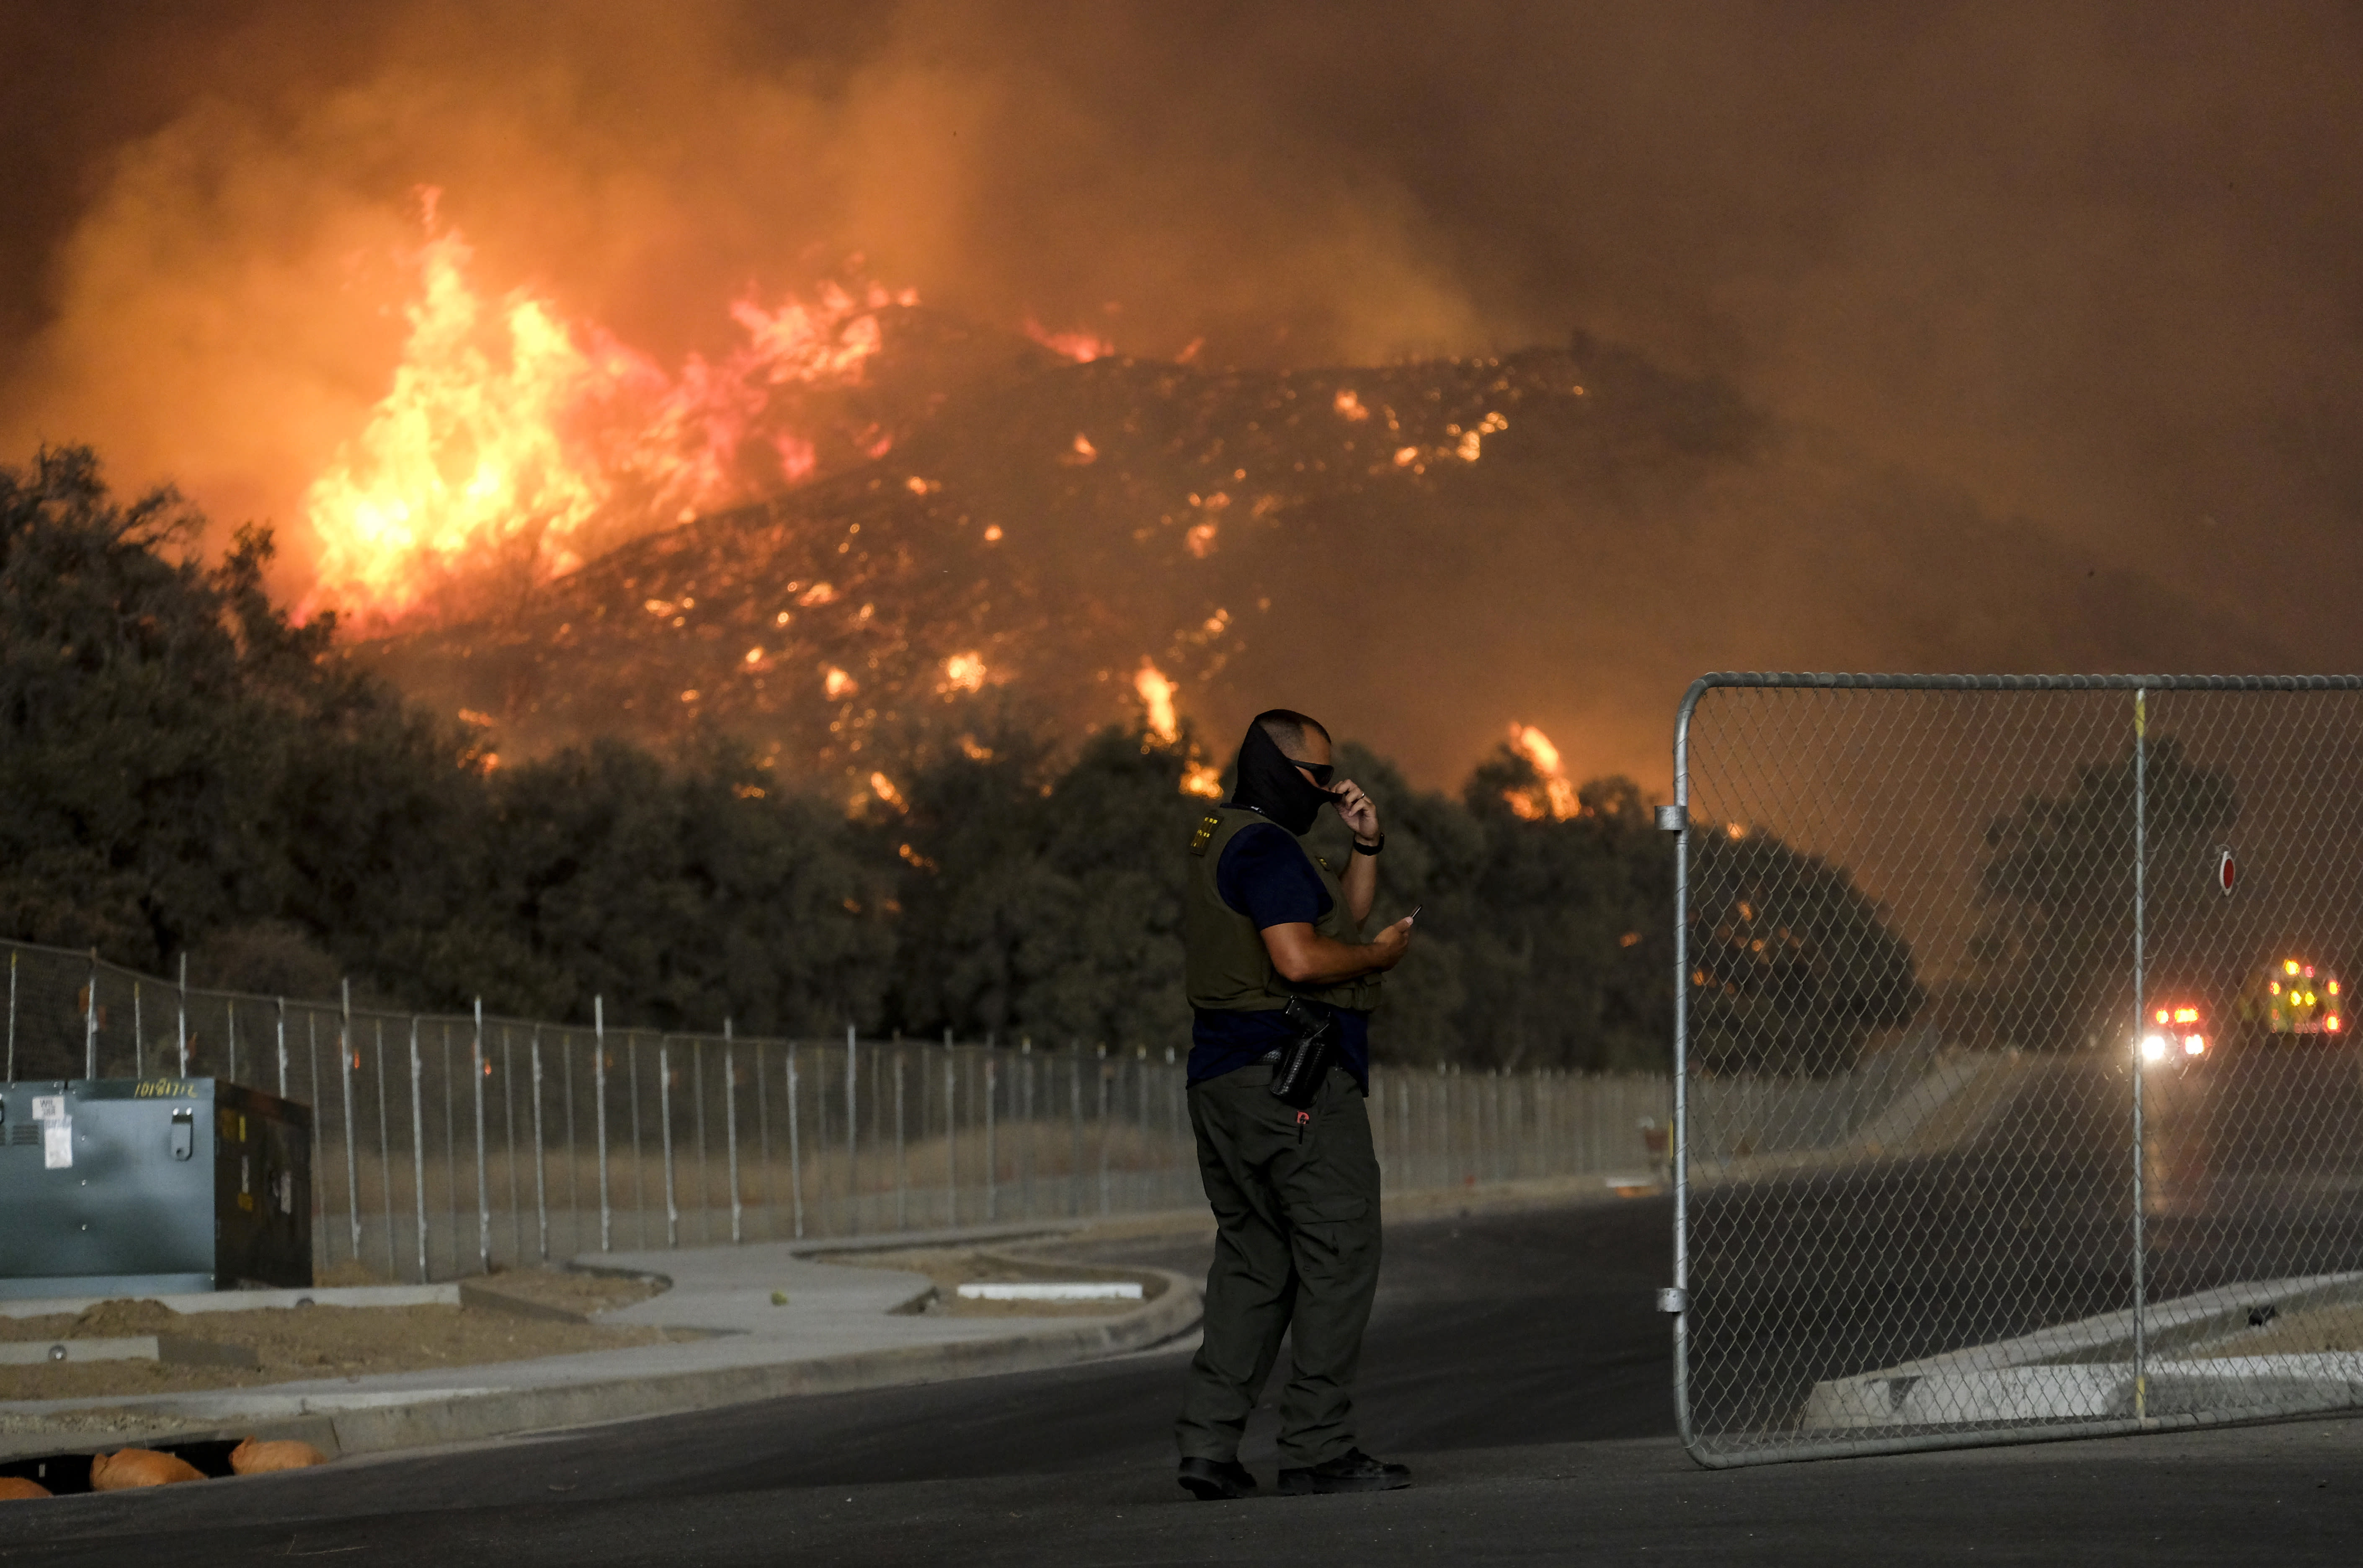 Governor declares state of emergency for California wildfire